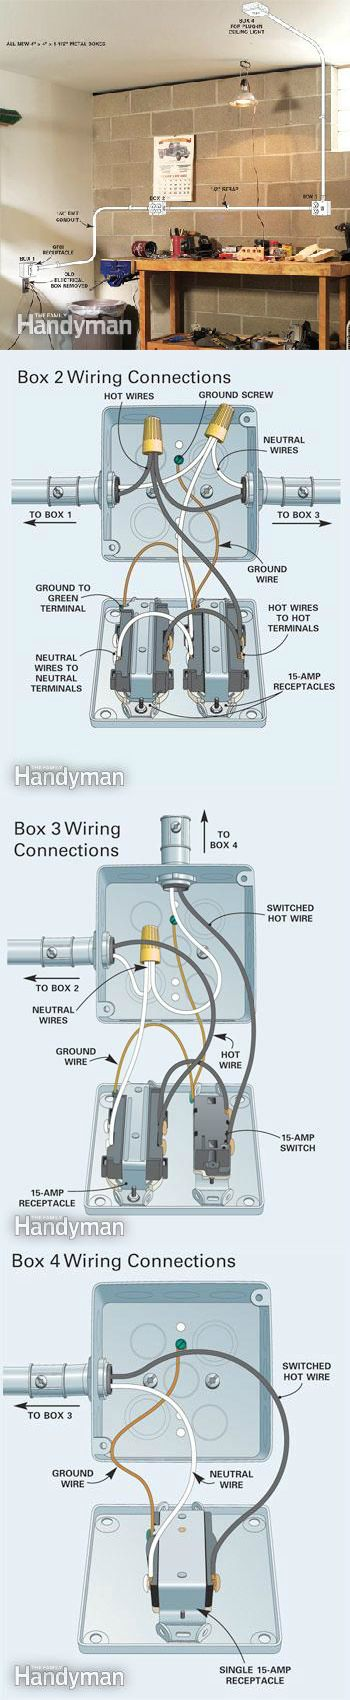 Excellent Boiler Diagram Tiny Ibanez Gio Wiring Round Www Bulldog Com Bulldog Remote Start Manual Young Push Pull Volume Pot Wiring Purple3 Coil Pickup How To Install Surface Mounted Wiring And Conduit | Metals ..